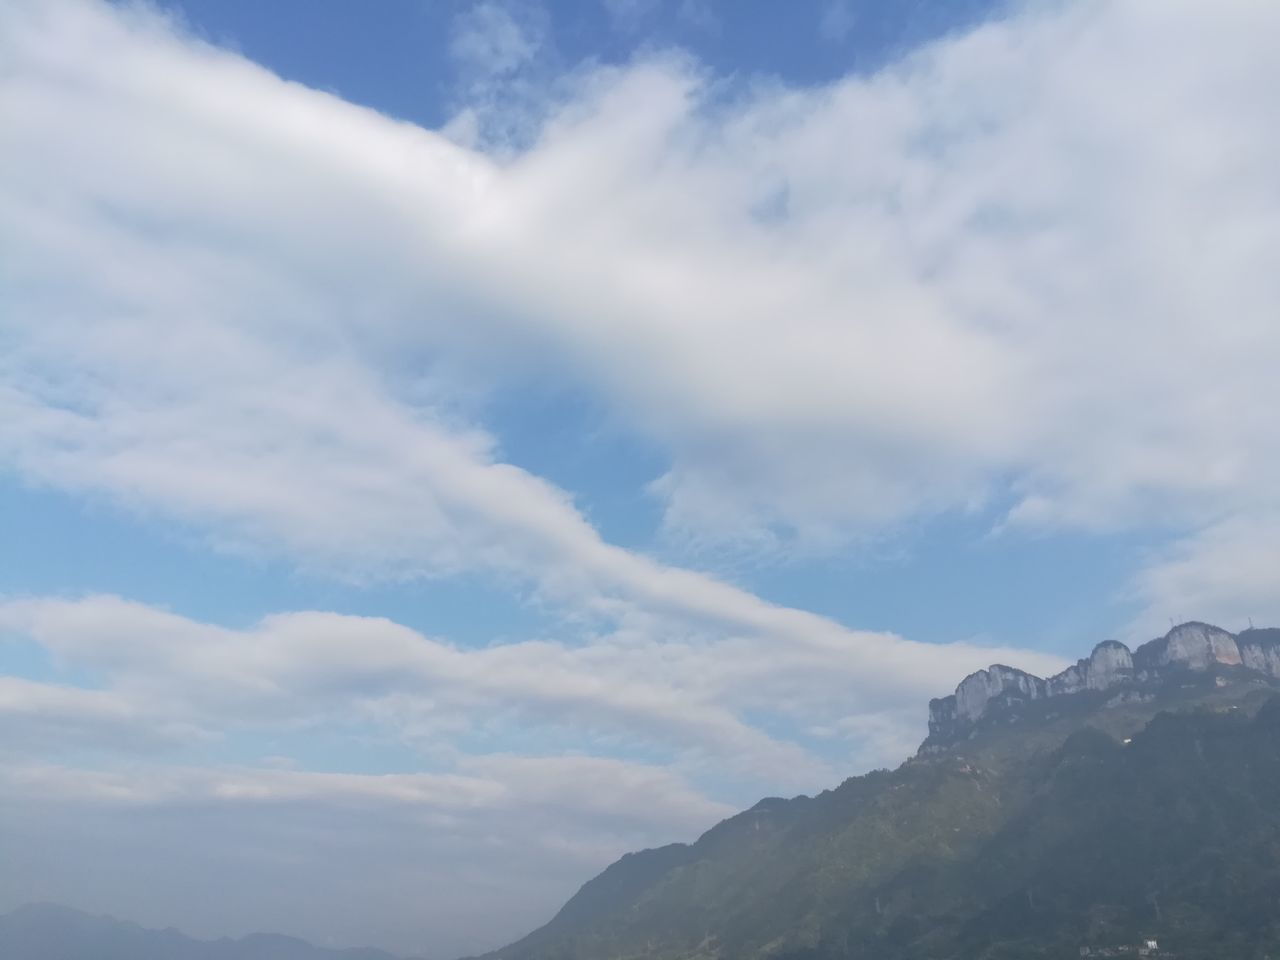 cloud - sky, sky, nature, beauty in nature, tranquility, scenics, low angle view, tranquil scene, outdoors, mountain, day, no people